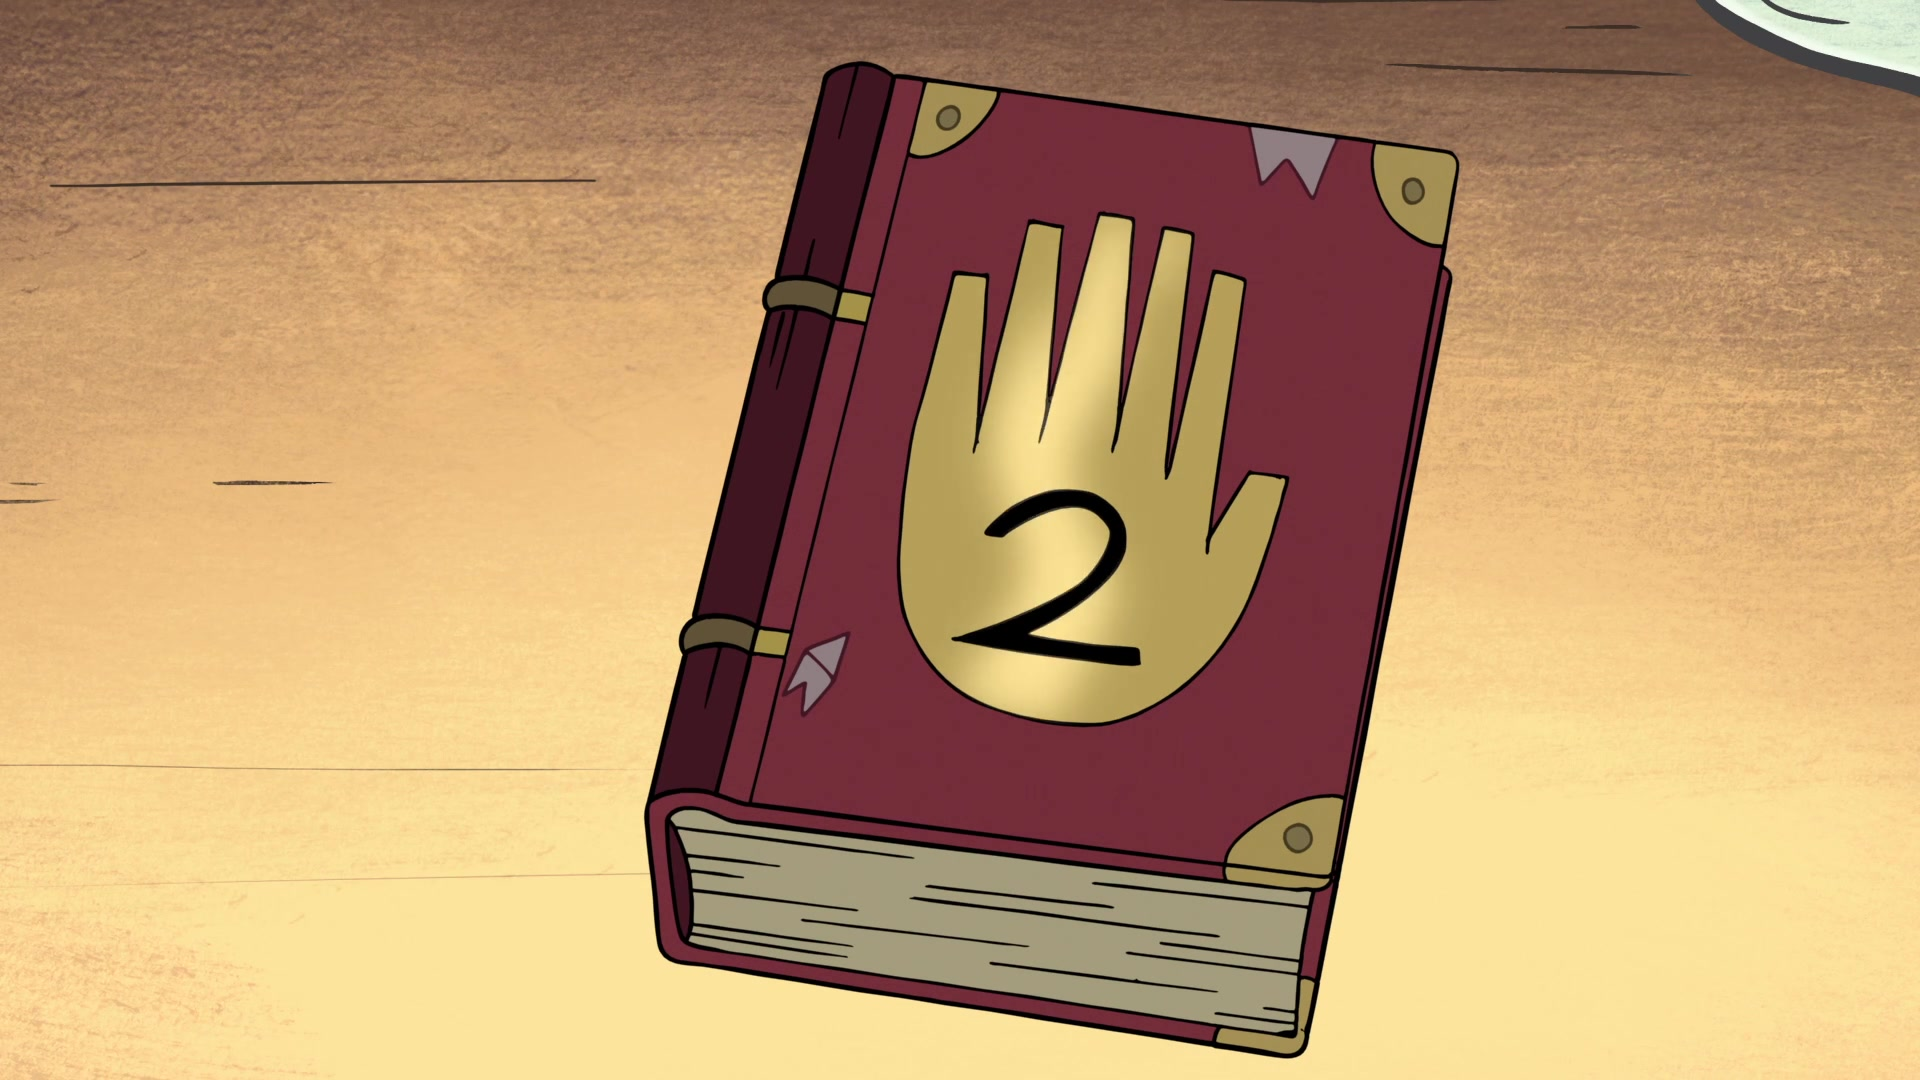 gravity falls season 1 episode 3 download